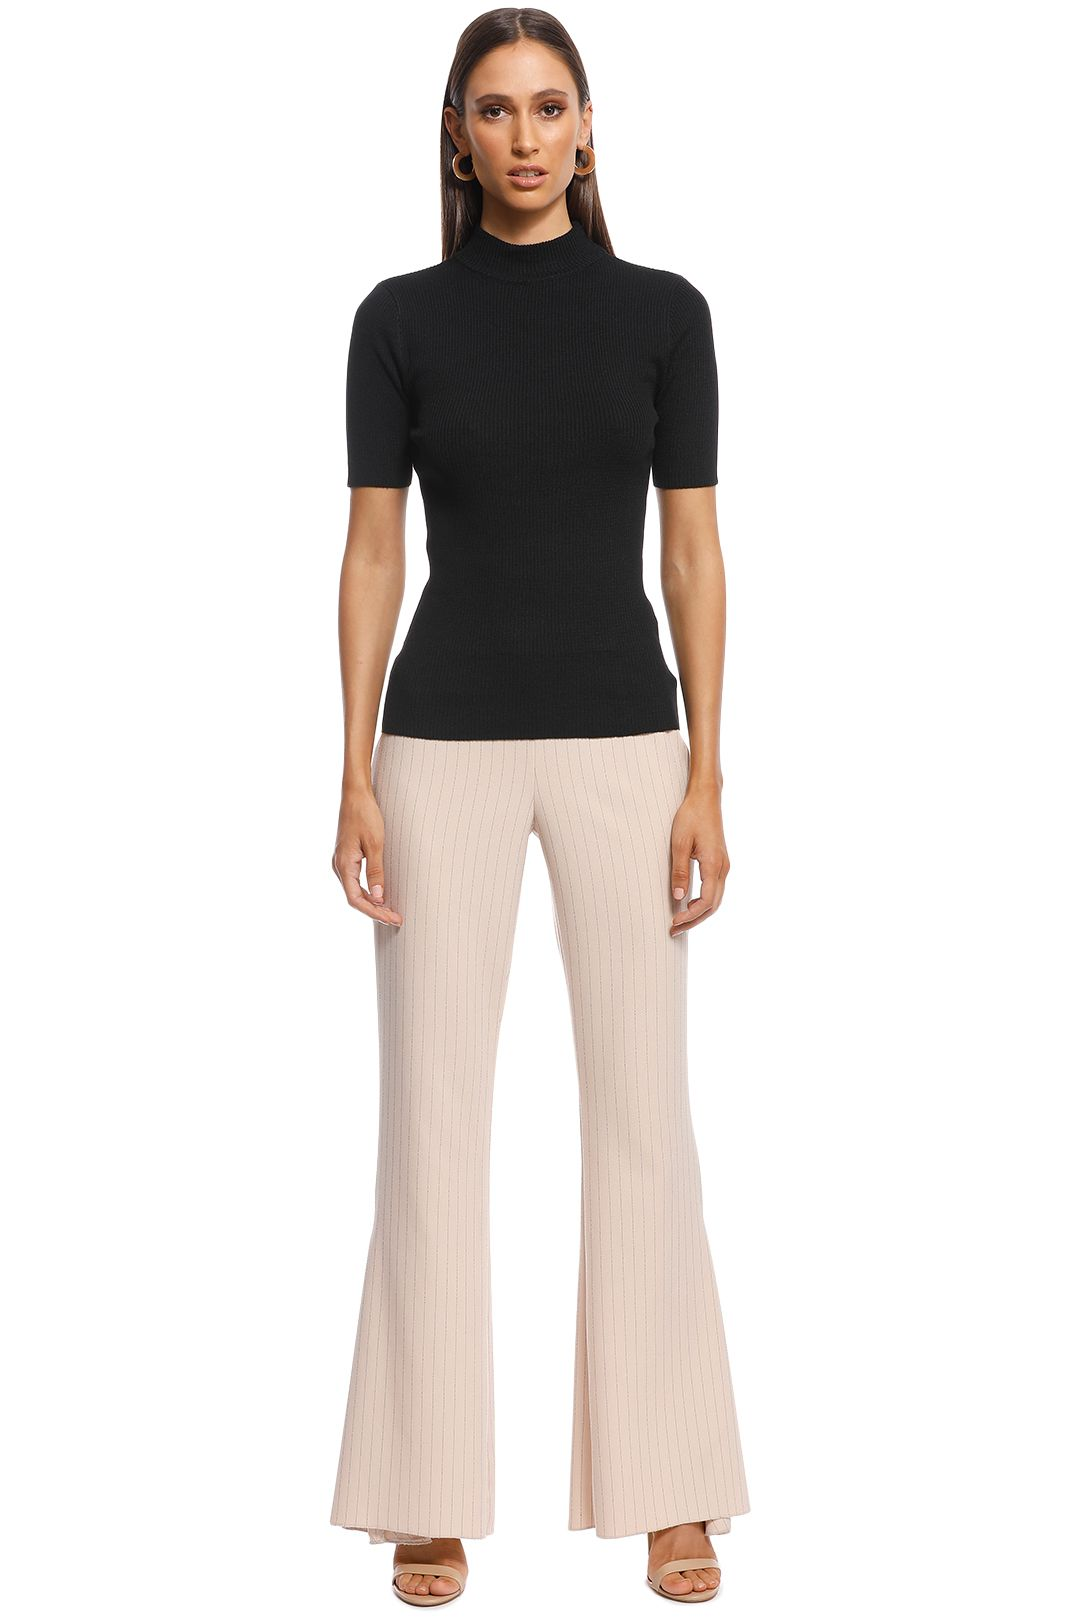 CMEO Collective - Go From Here Pant - Nude - Front